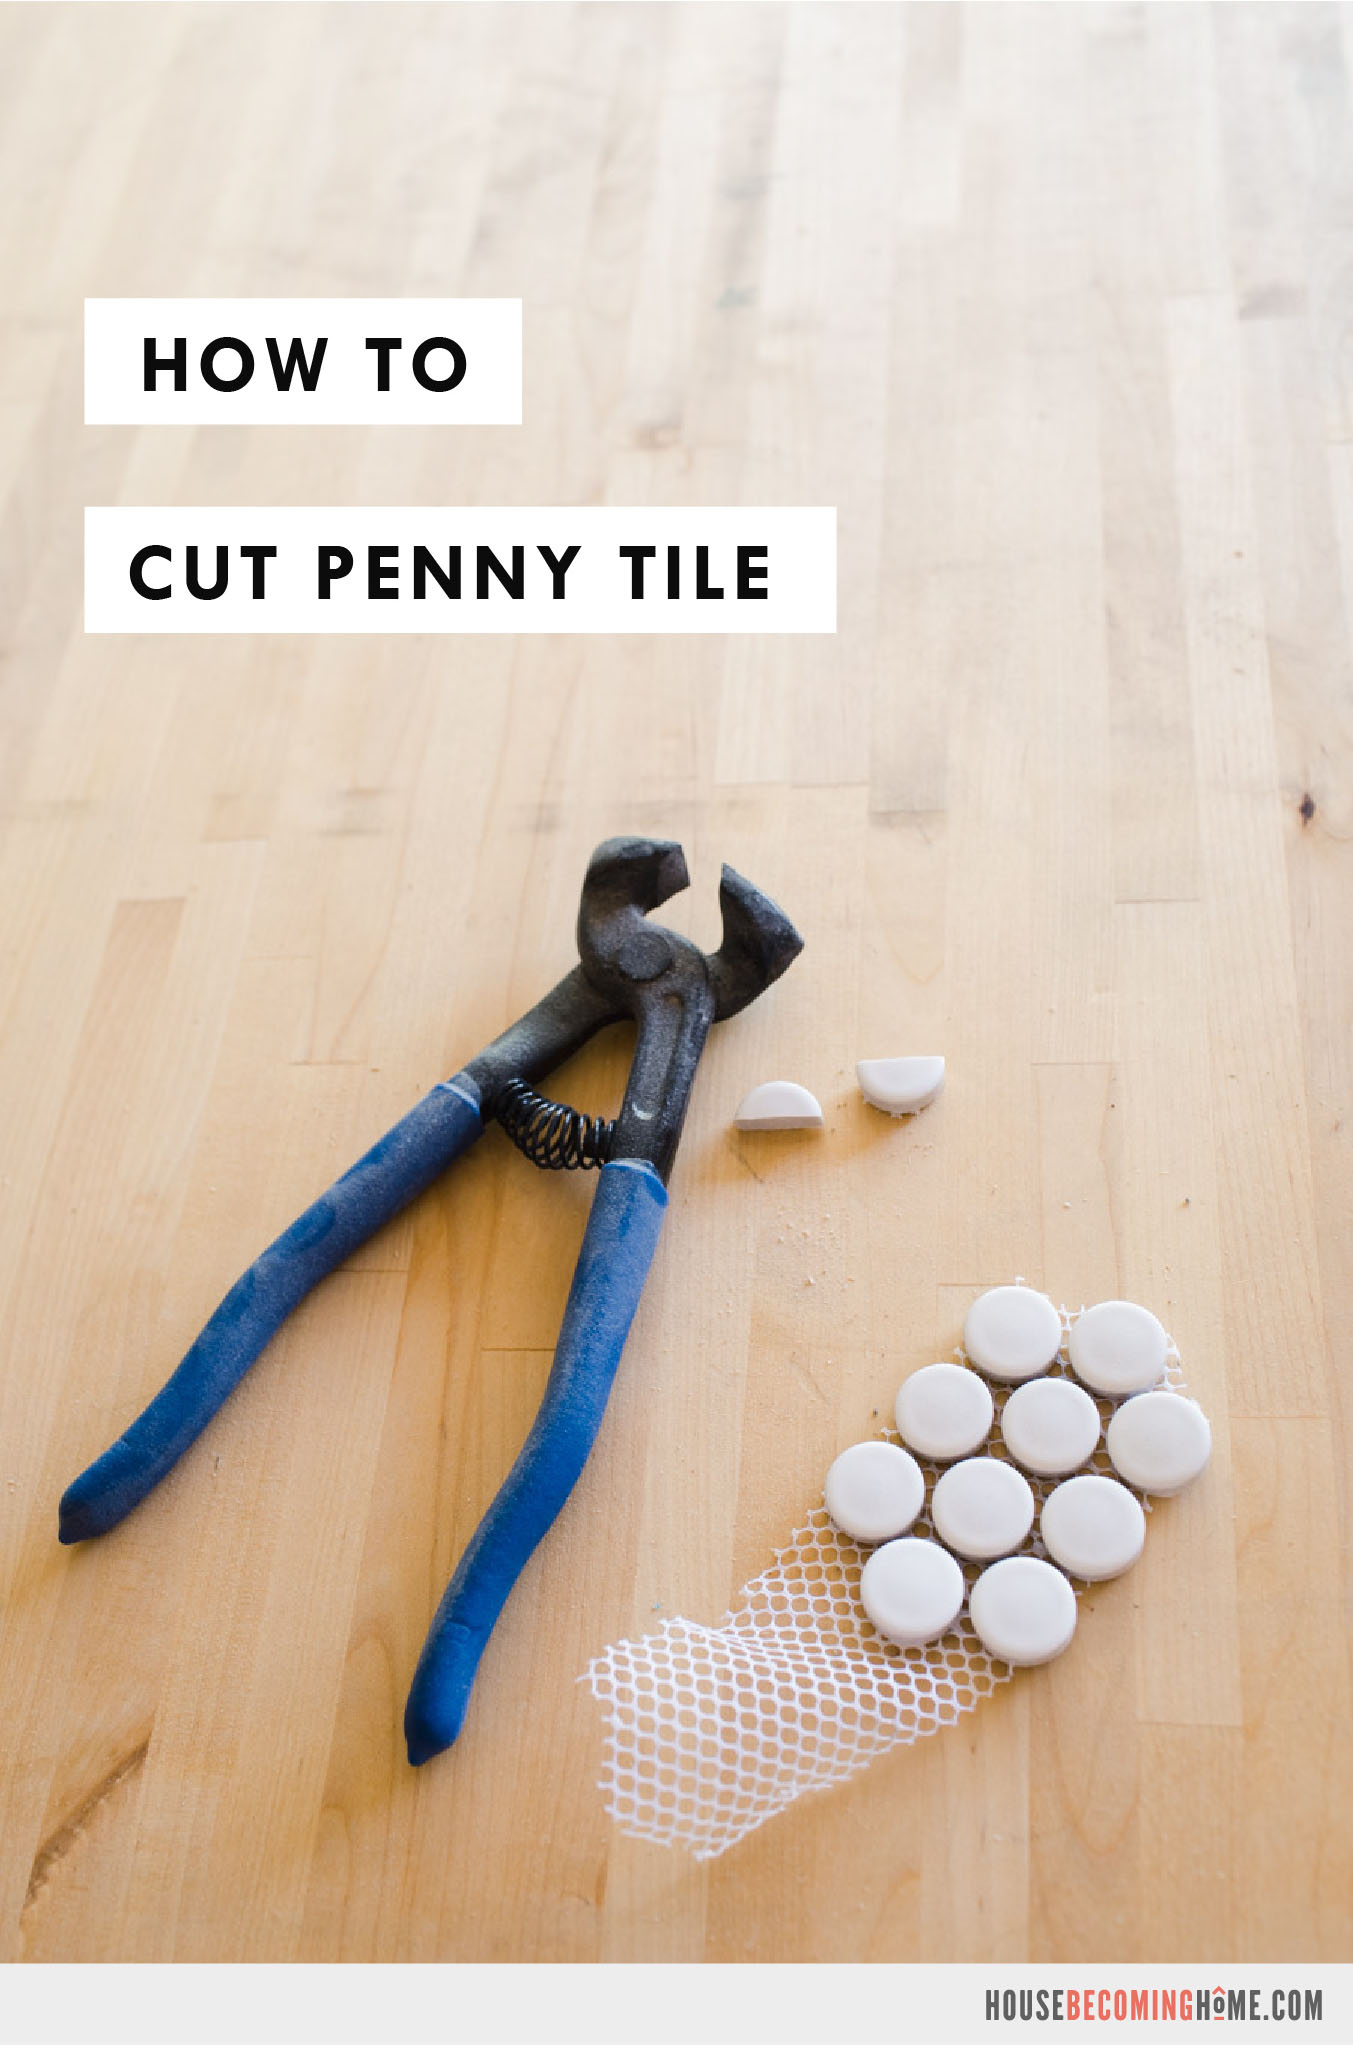 Learn How To Cut Penny Tile with a Simple Pair of Tile Nippers. Instructions and quick video!